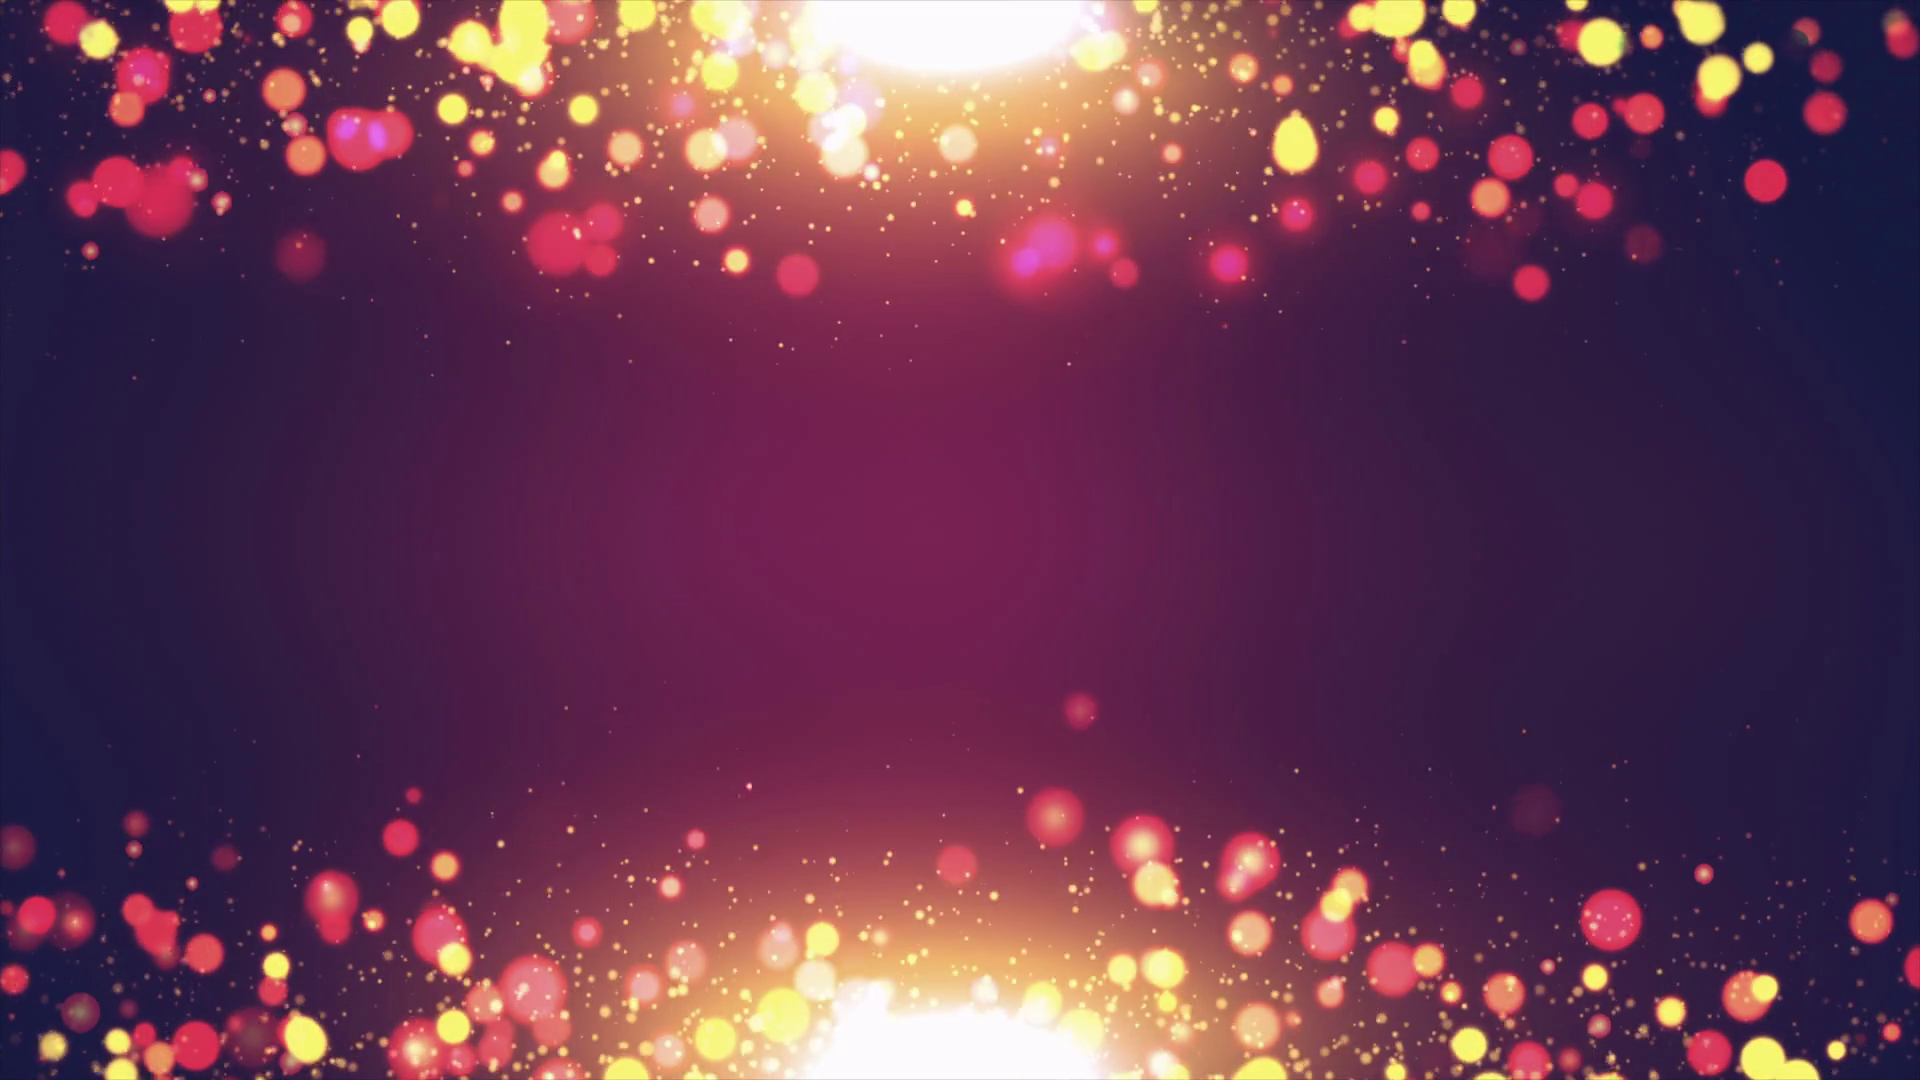 Wedding Particles Background Animation 4K Hd.